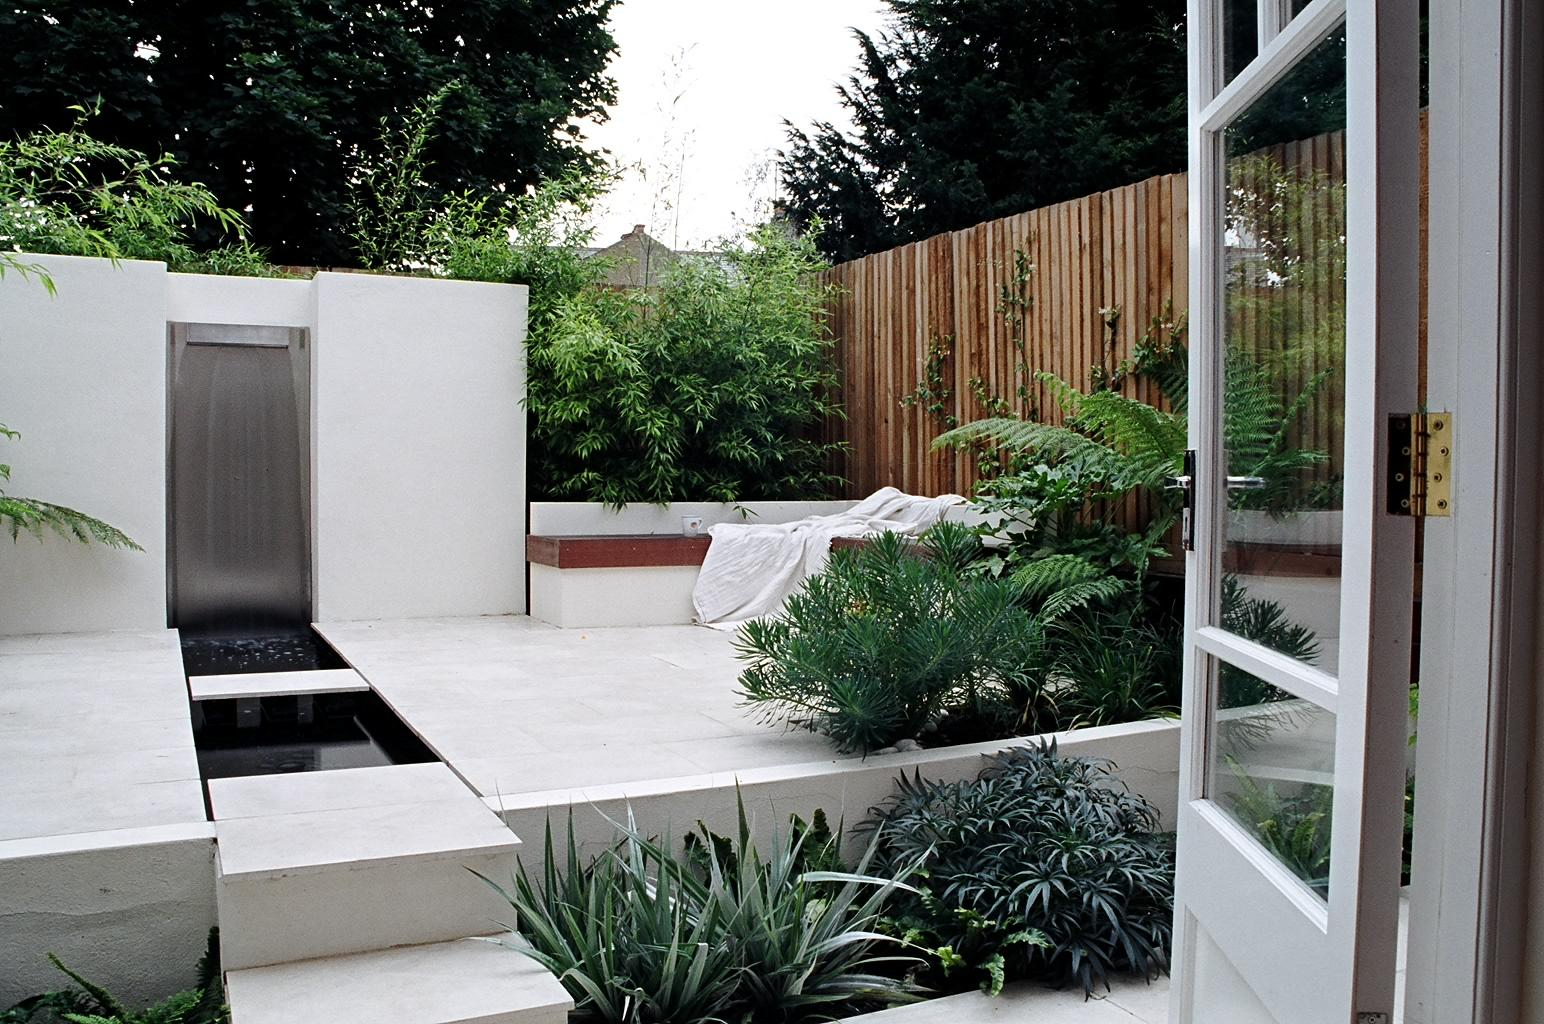 Small urban garden design garden design st albans for Small garden design pictures gallery